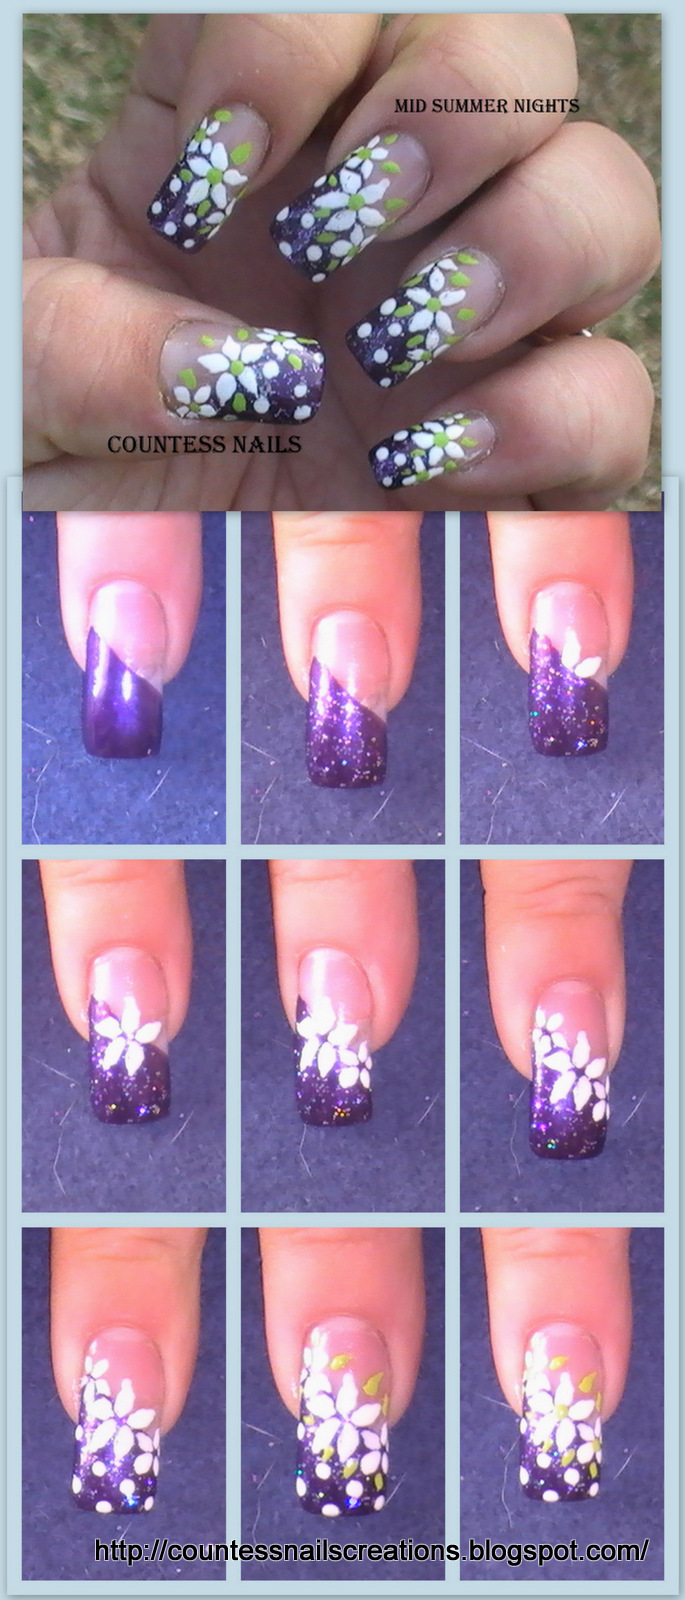 White Flowers Purple French Nail Art Tutorial E1348254007577 Mid Summer Nights Floral Entry